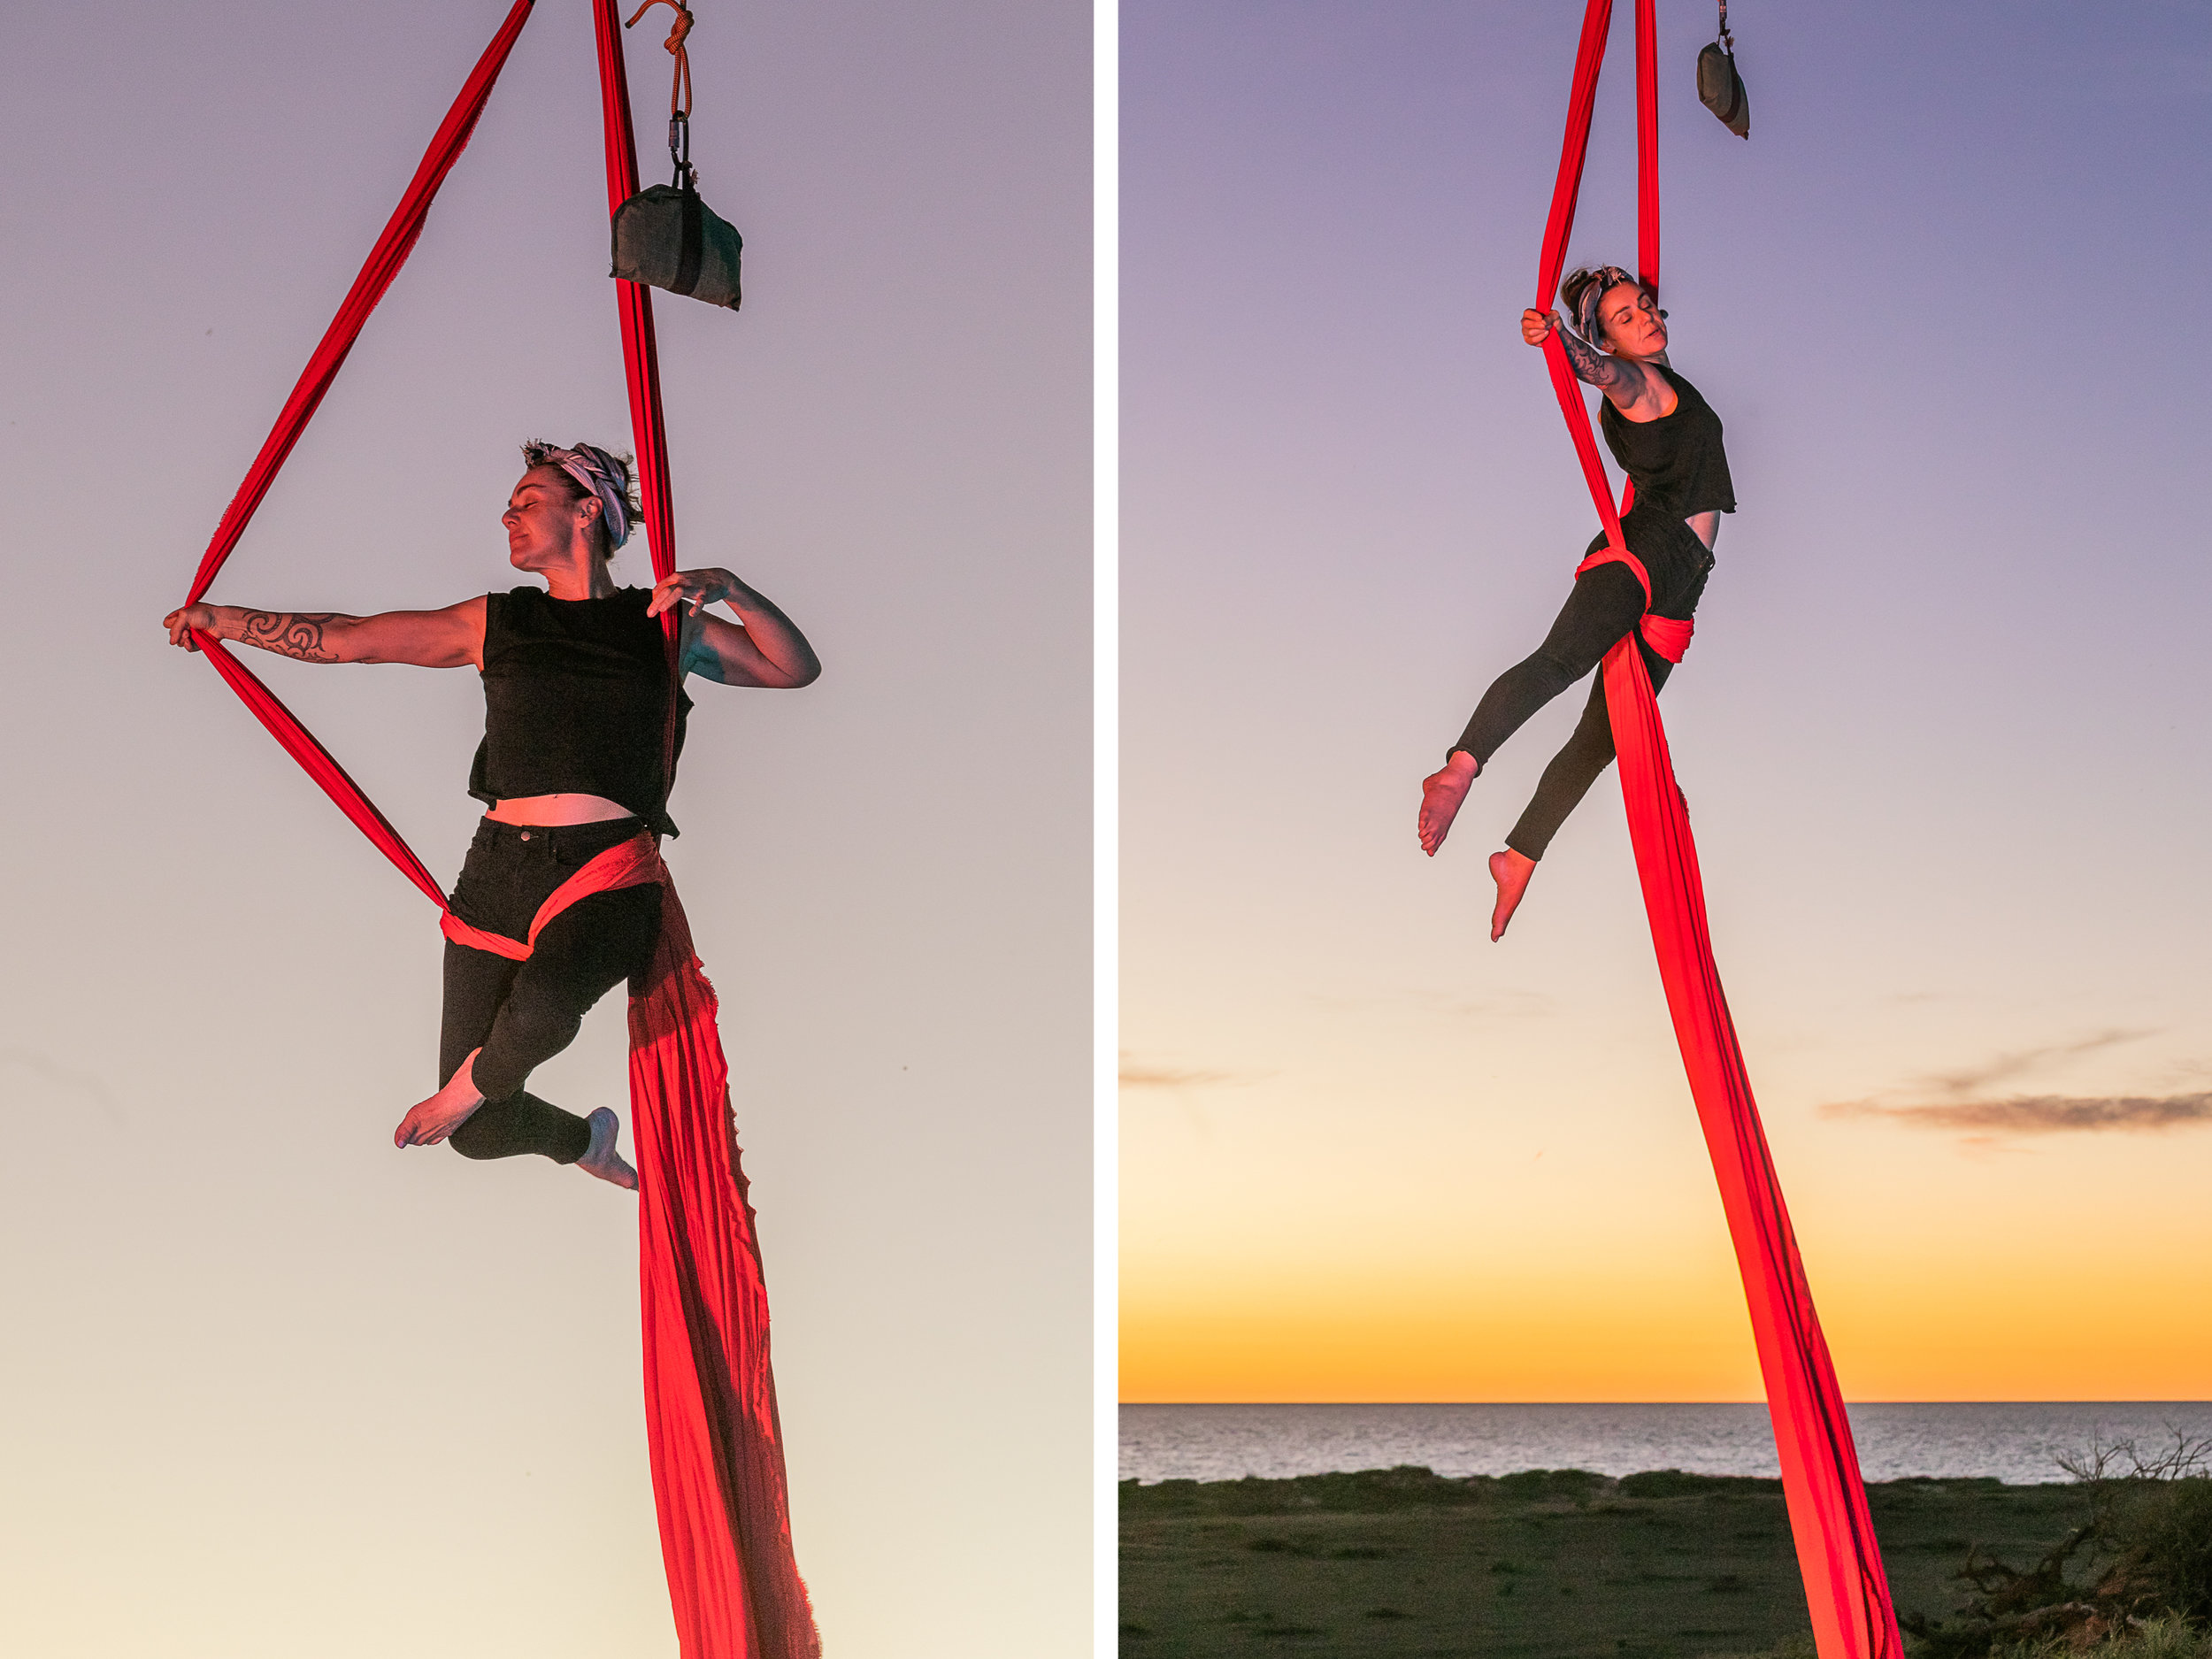 Aerialist performer Theaker von Ziarno rehearsing at Dudley House, Warroora Station at sunset